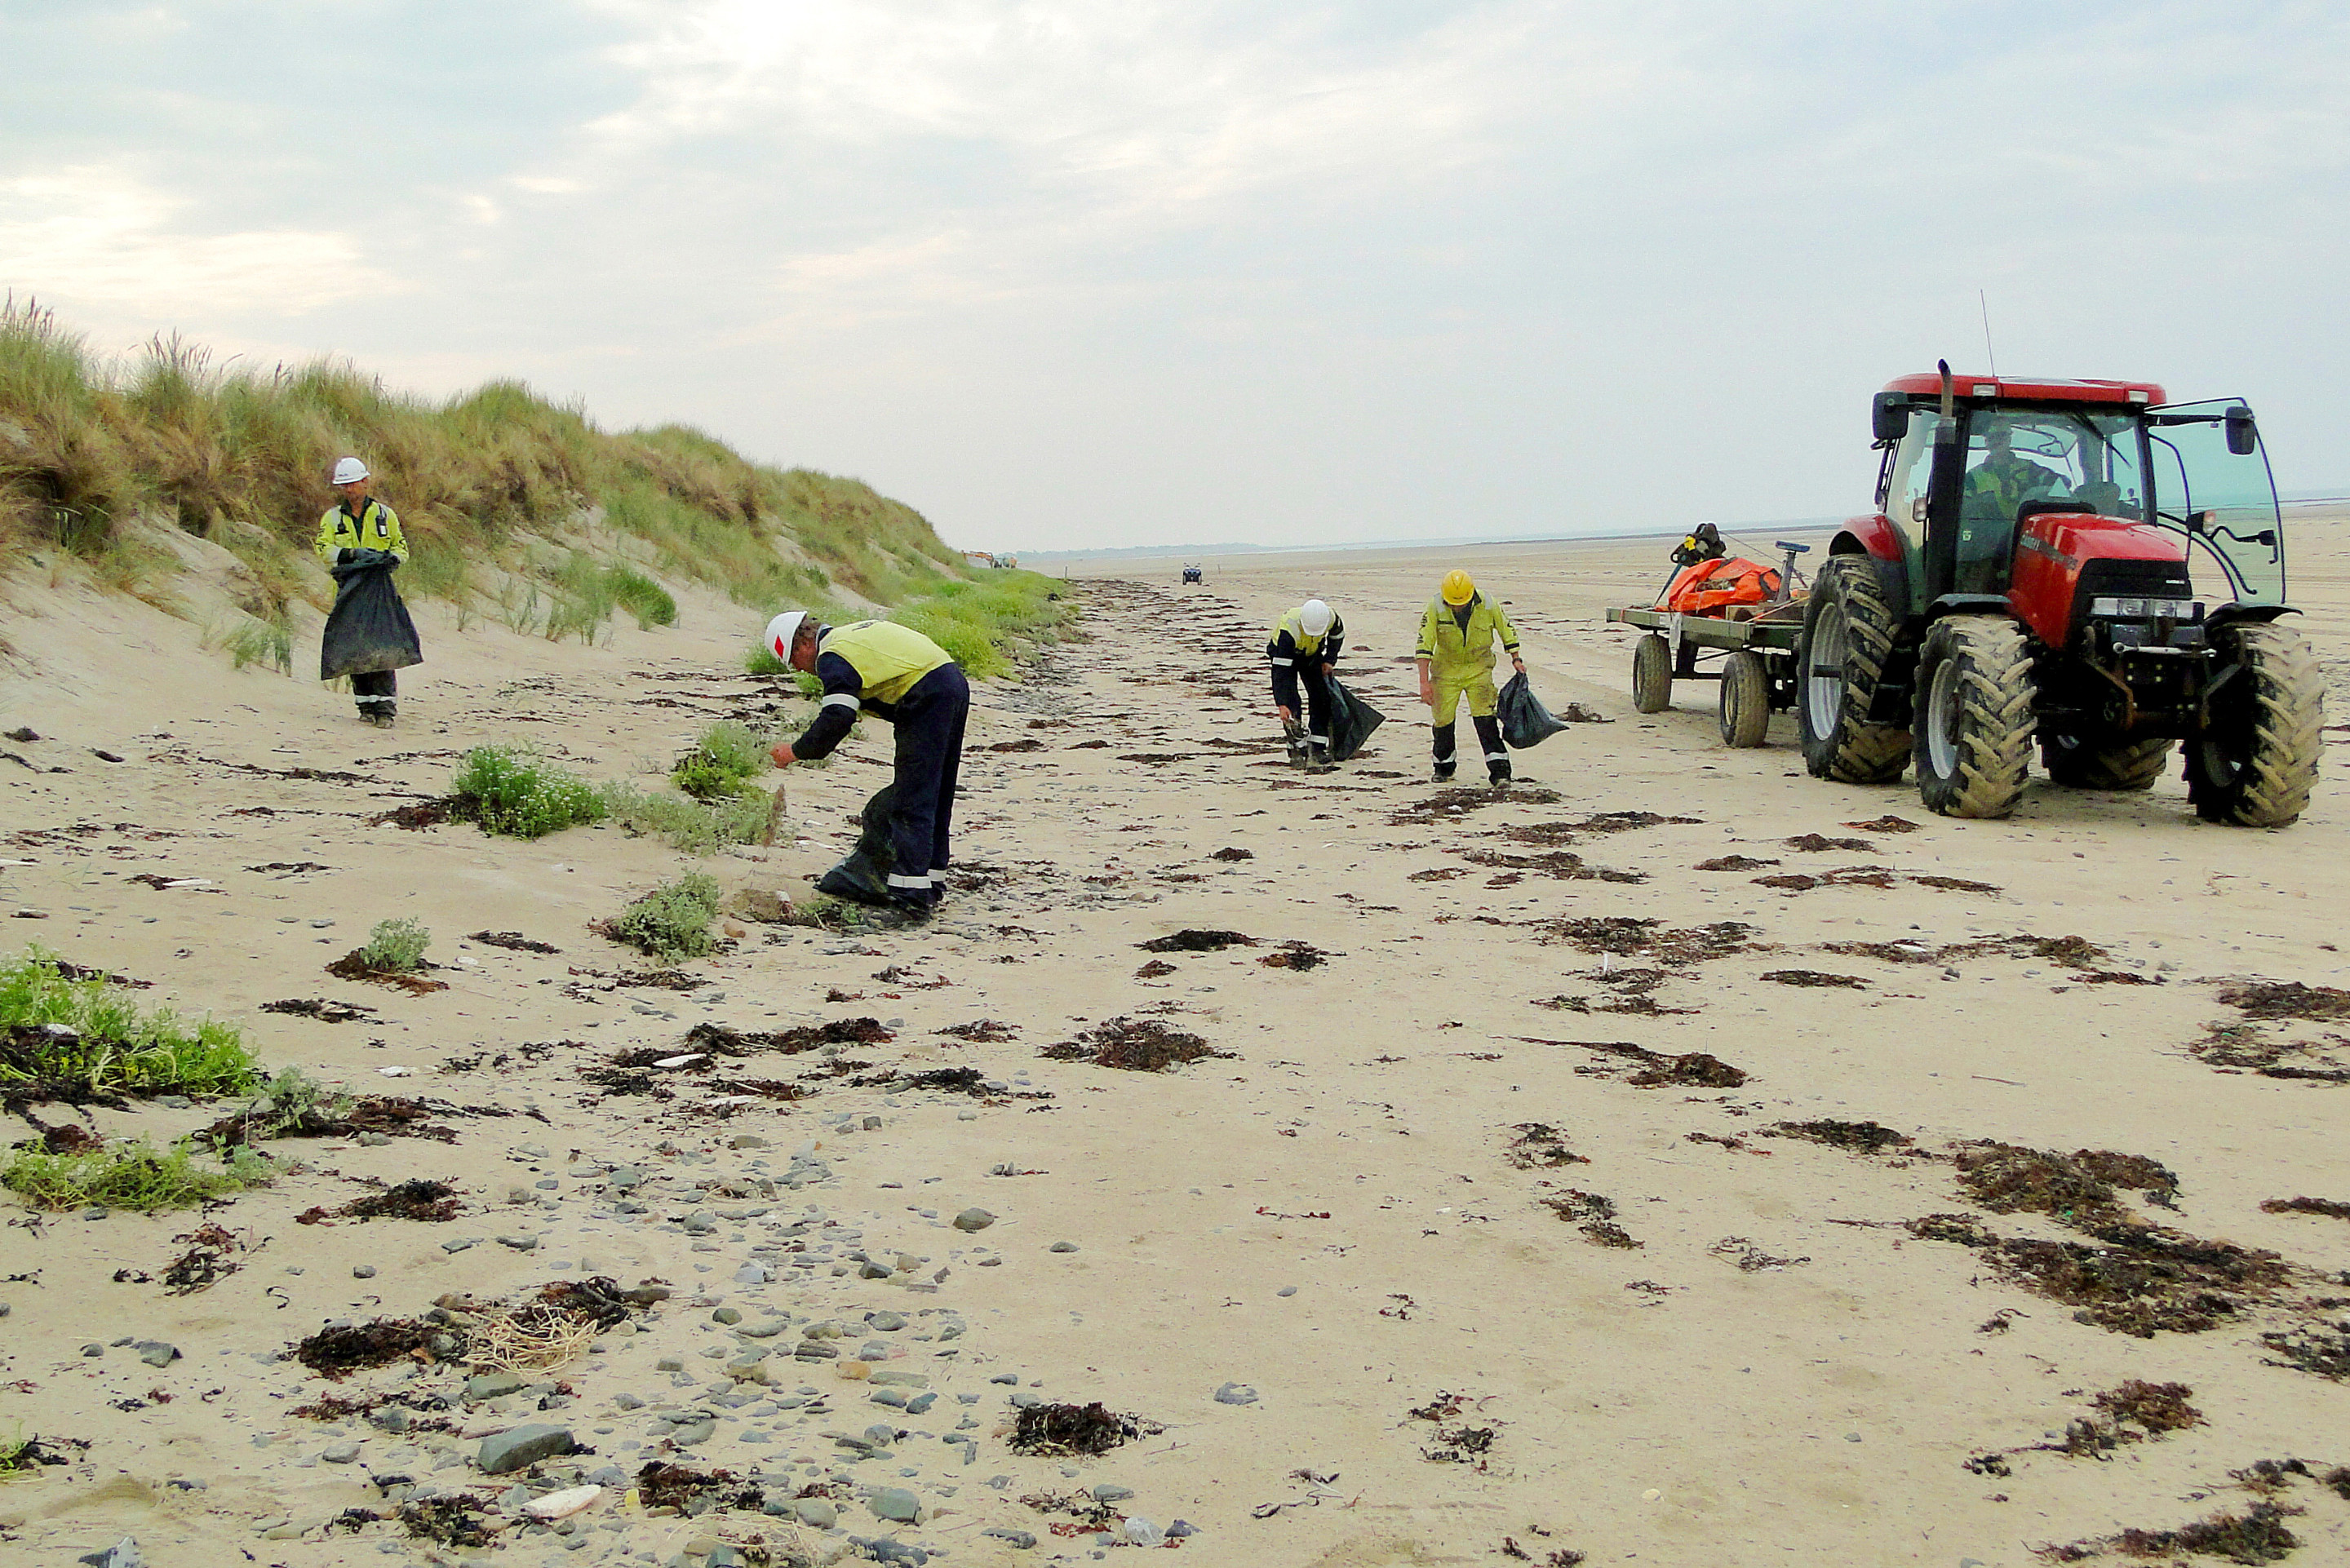 Spontaneous beach cleanup by VBMS colleagues in Normandy, France